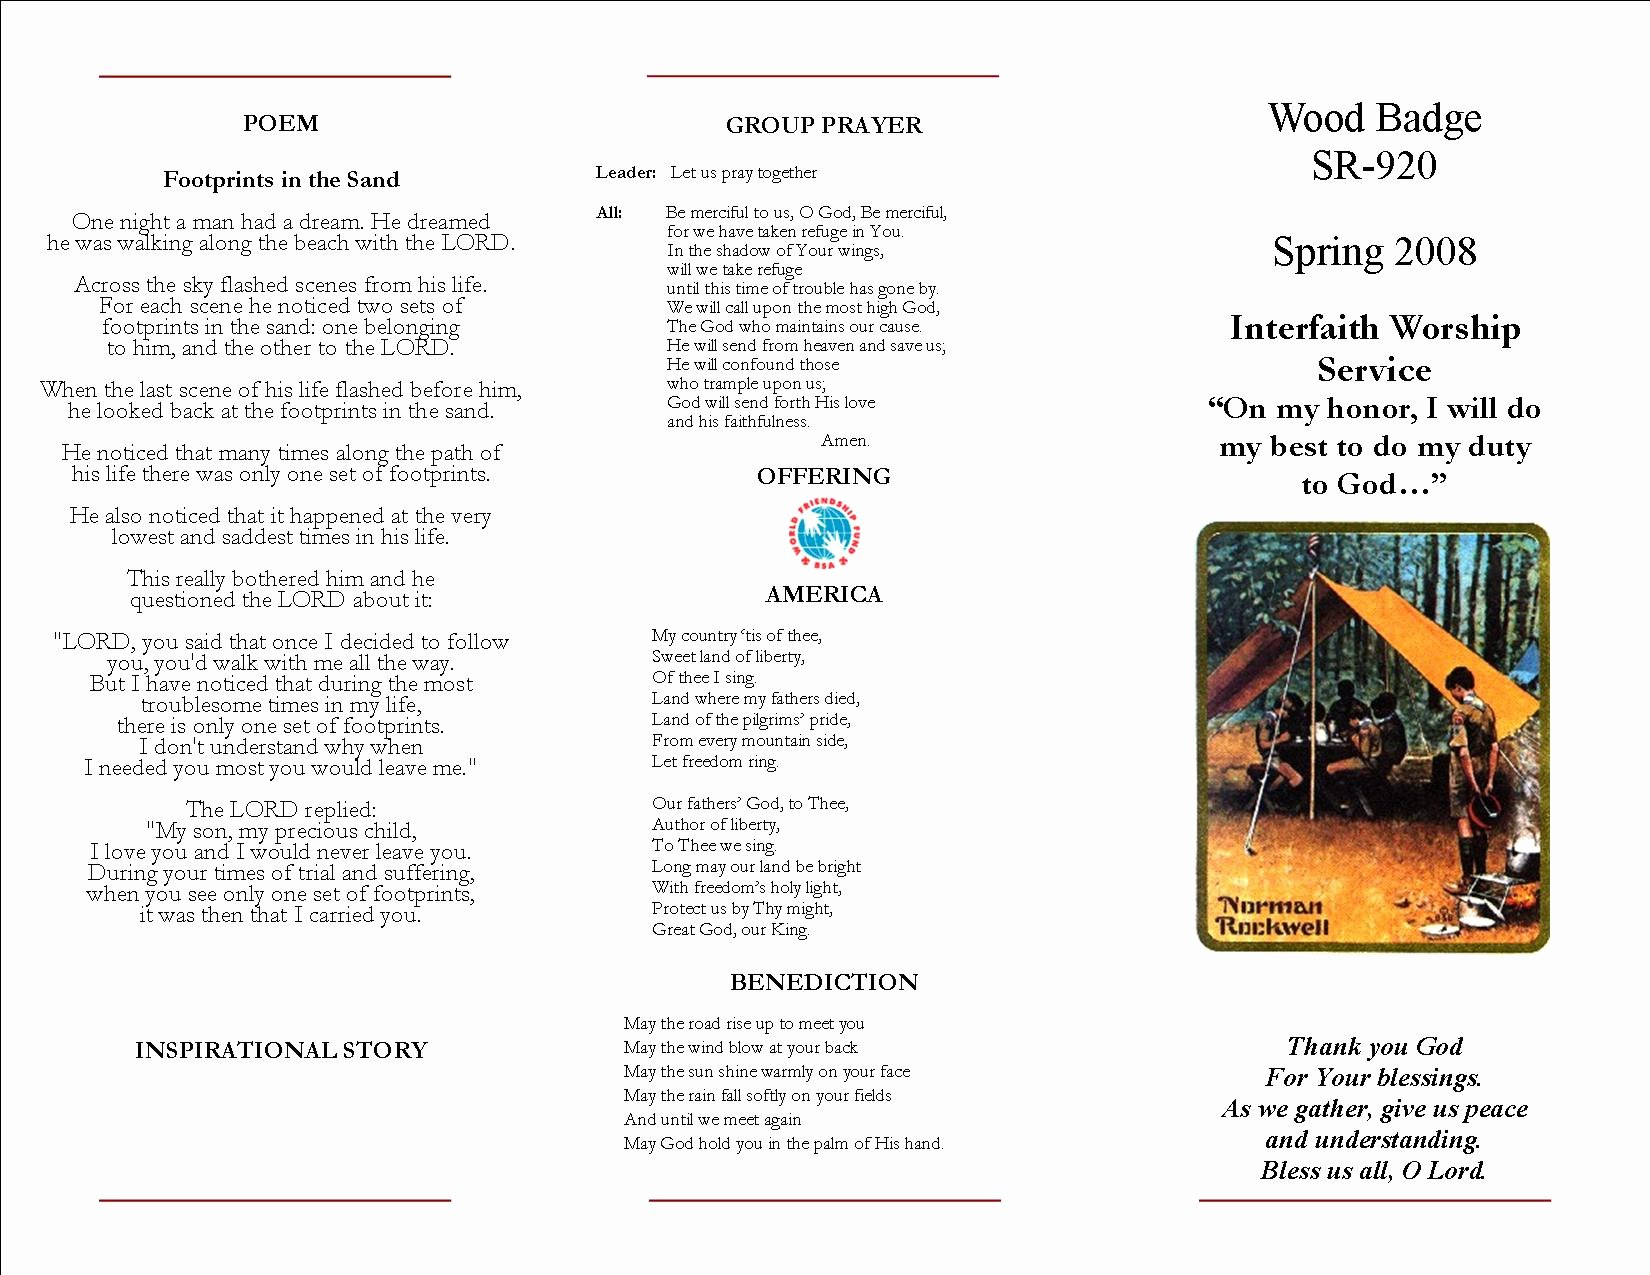 Worship Service Planning Template New Sample Boy Scout Interfaith Worship Service